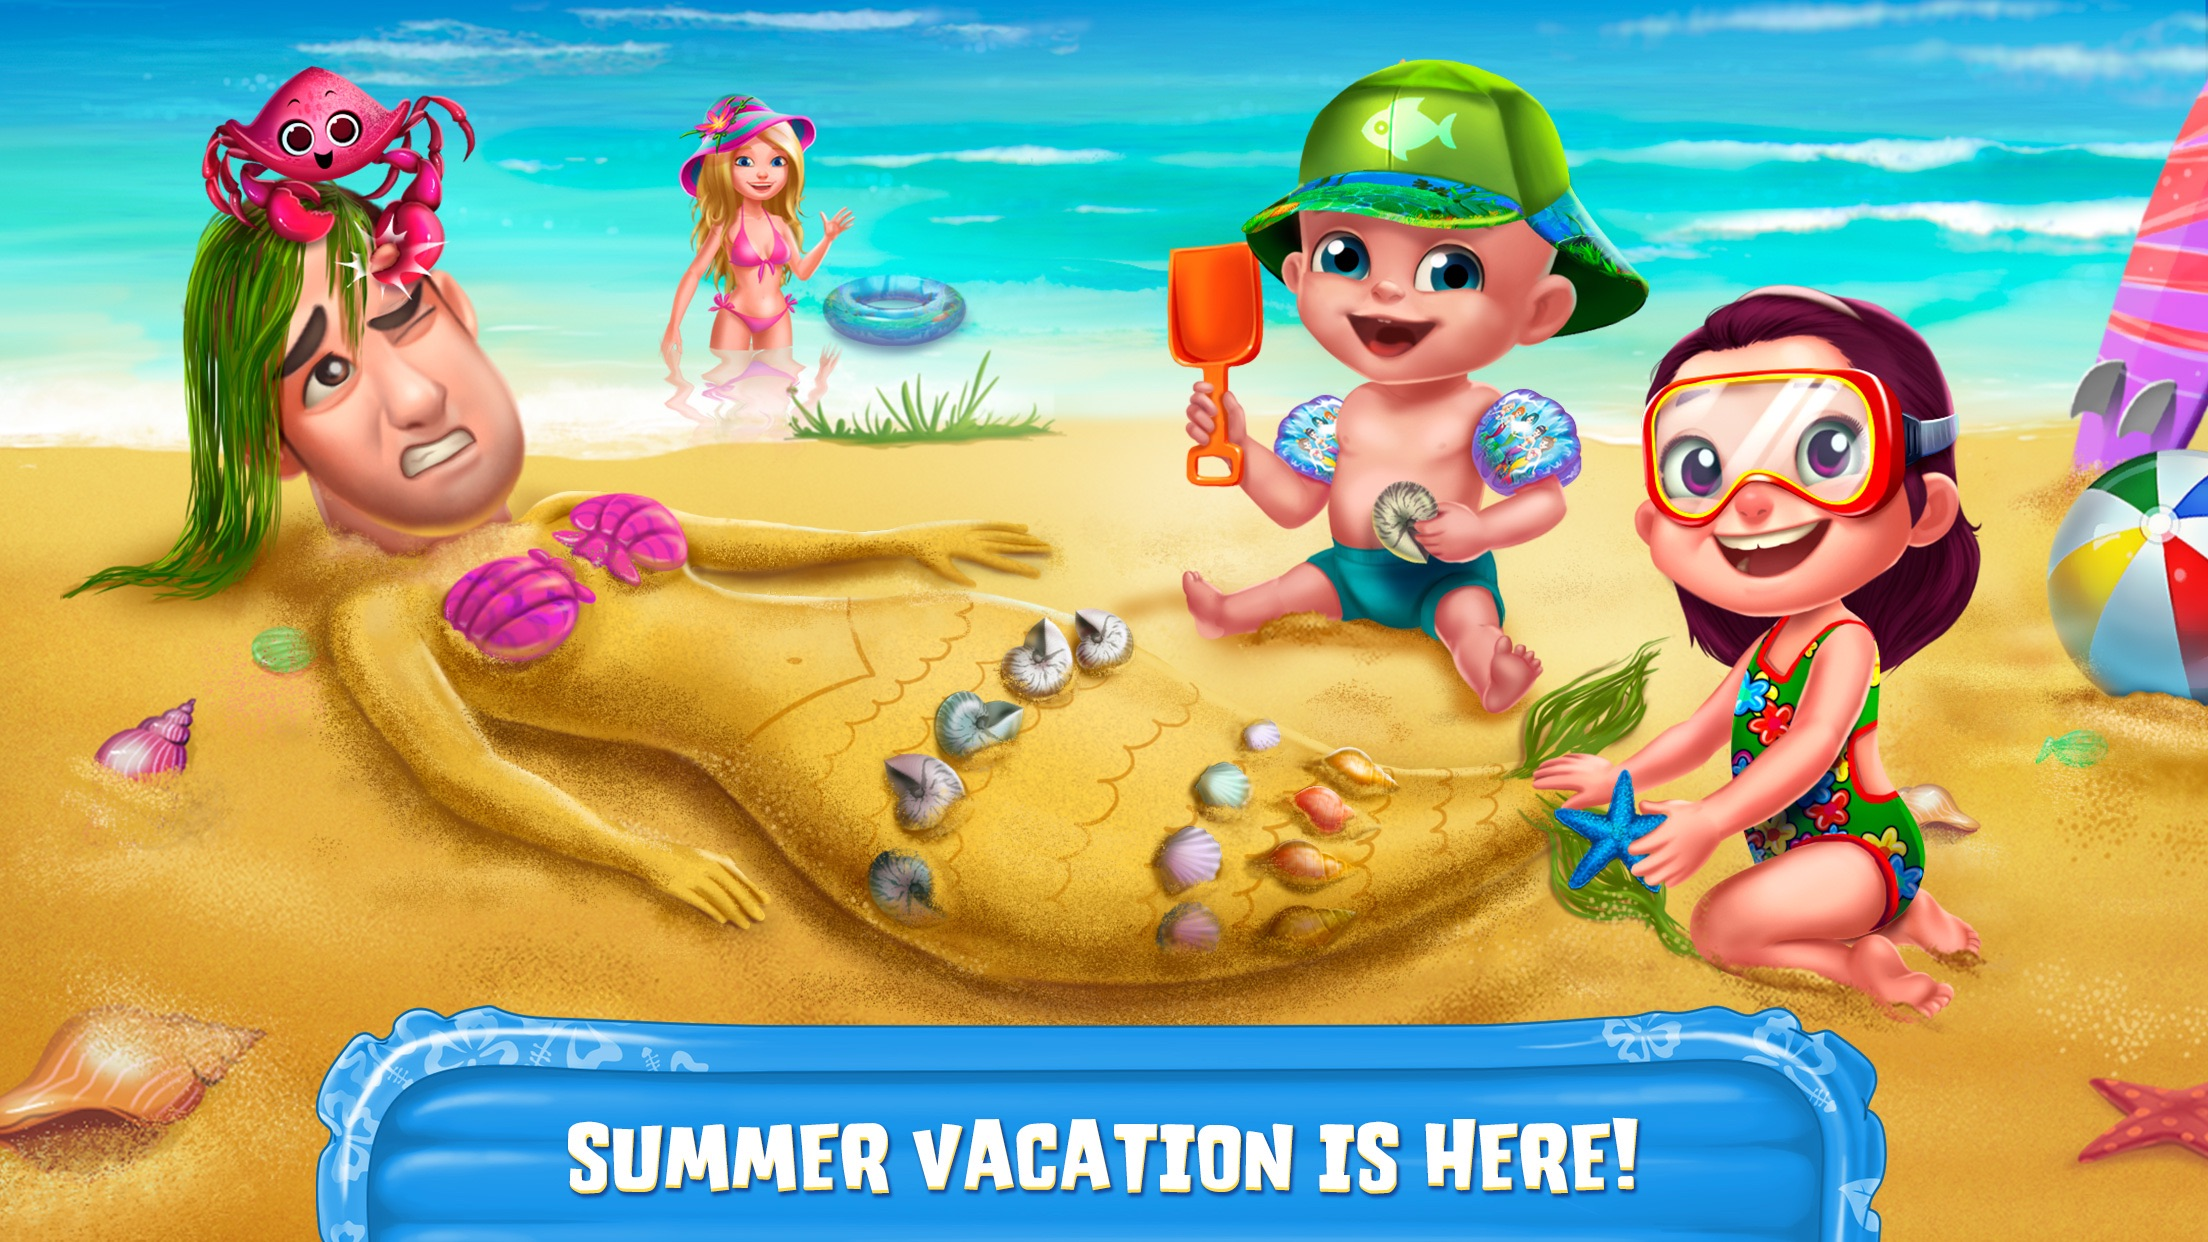 Summer Vacation - Fun at the Beach Screenshot